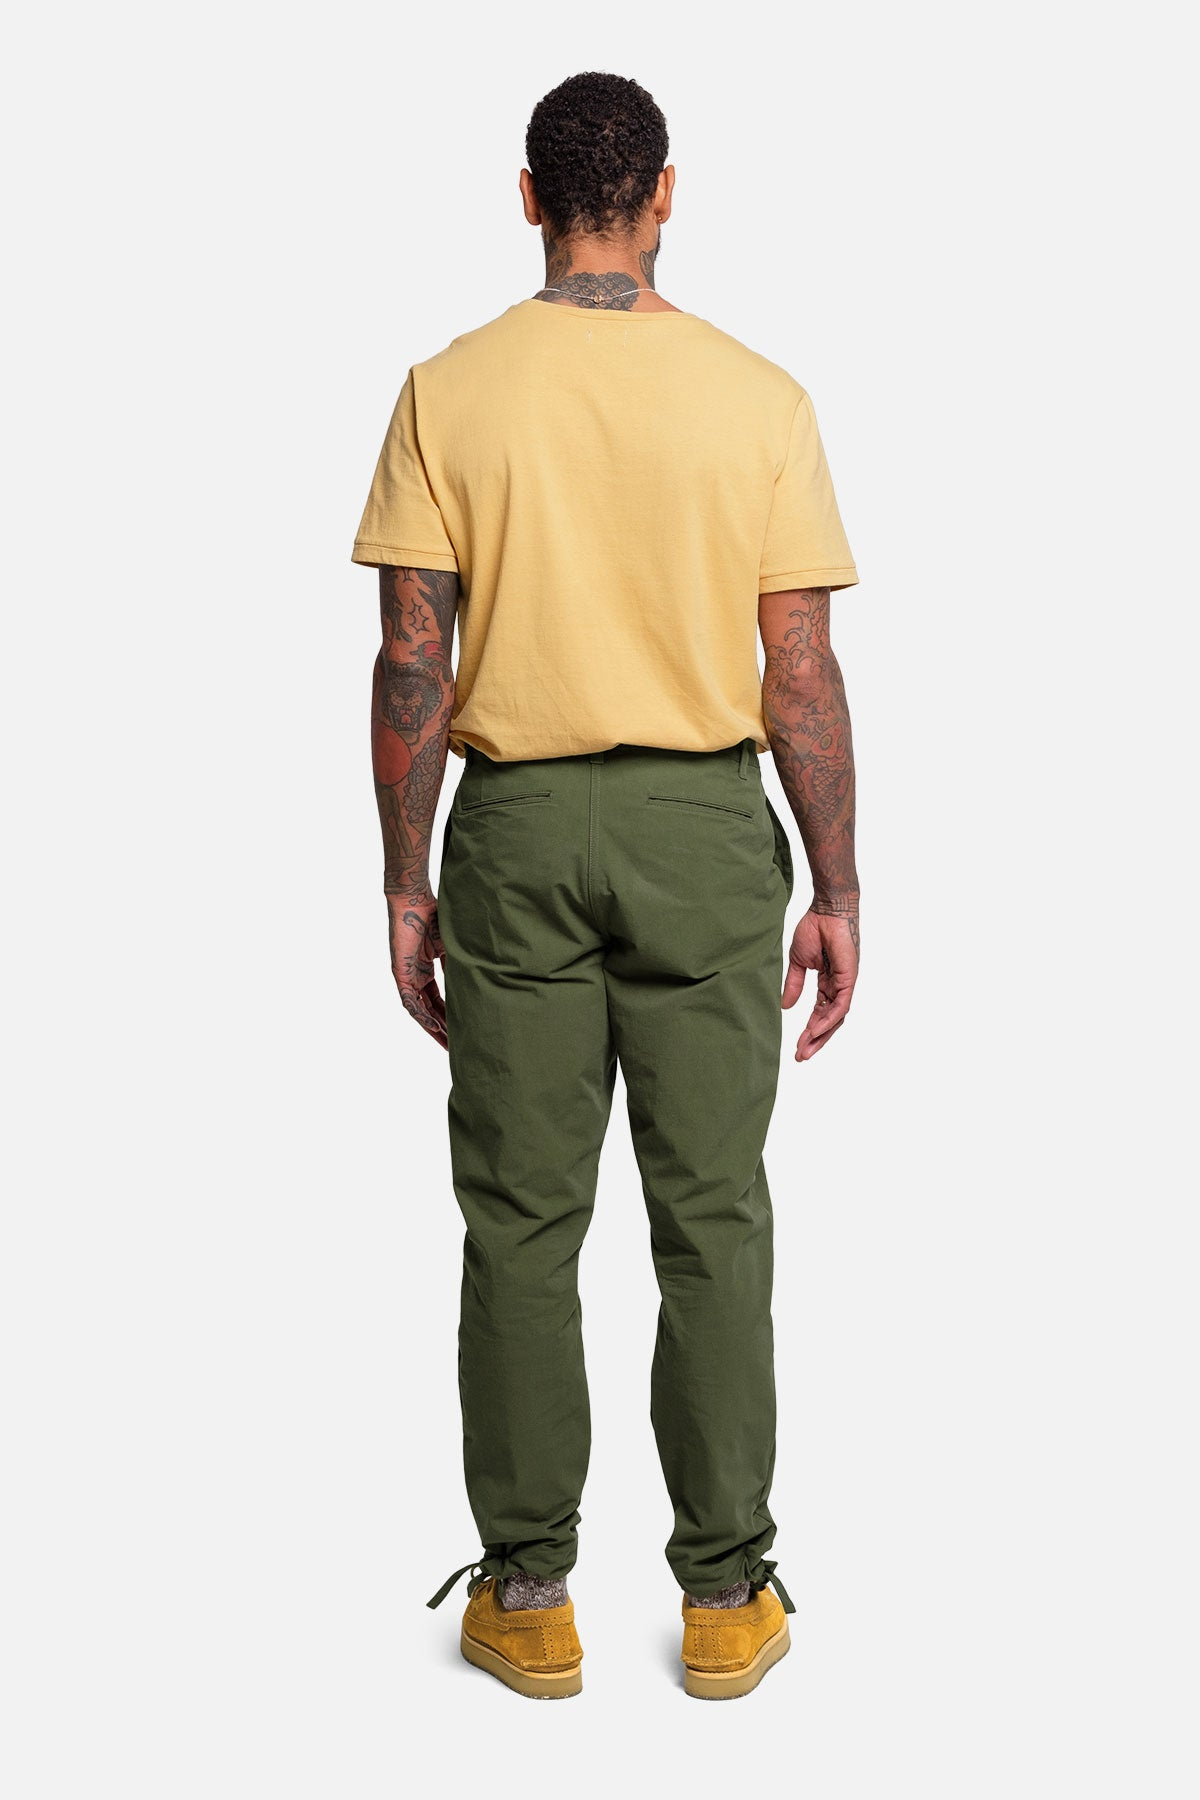 DRAWSTRING PANT IN MOSS RIPSTOP - Fortune Goods